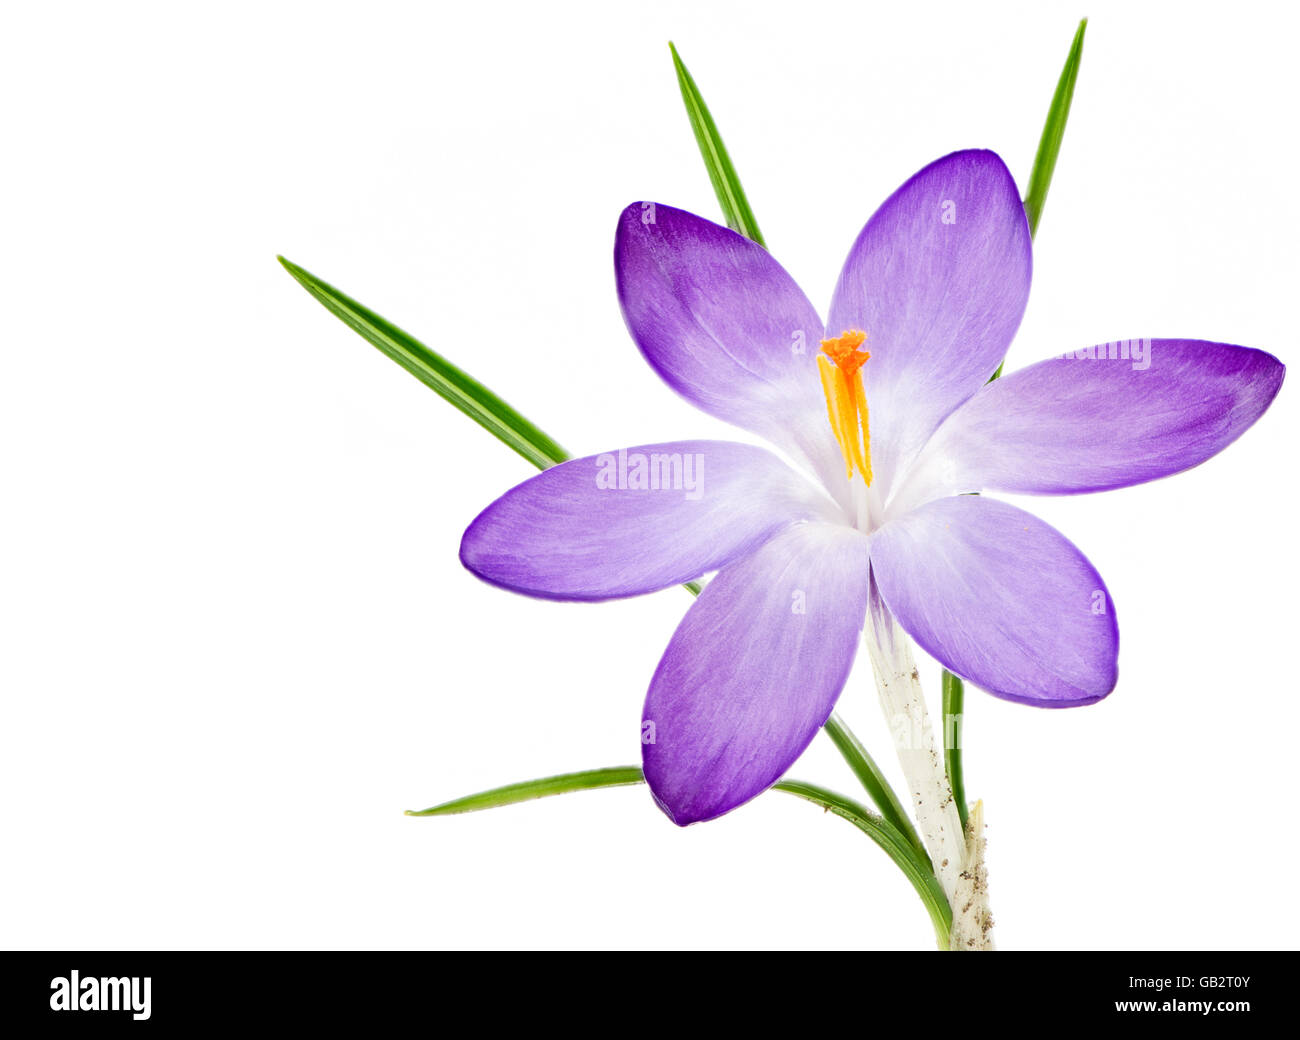 Macro of an isolated purple crocus flower blossom Stock Photo